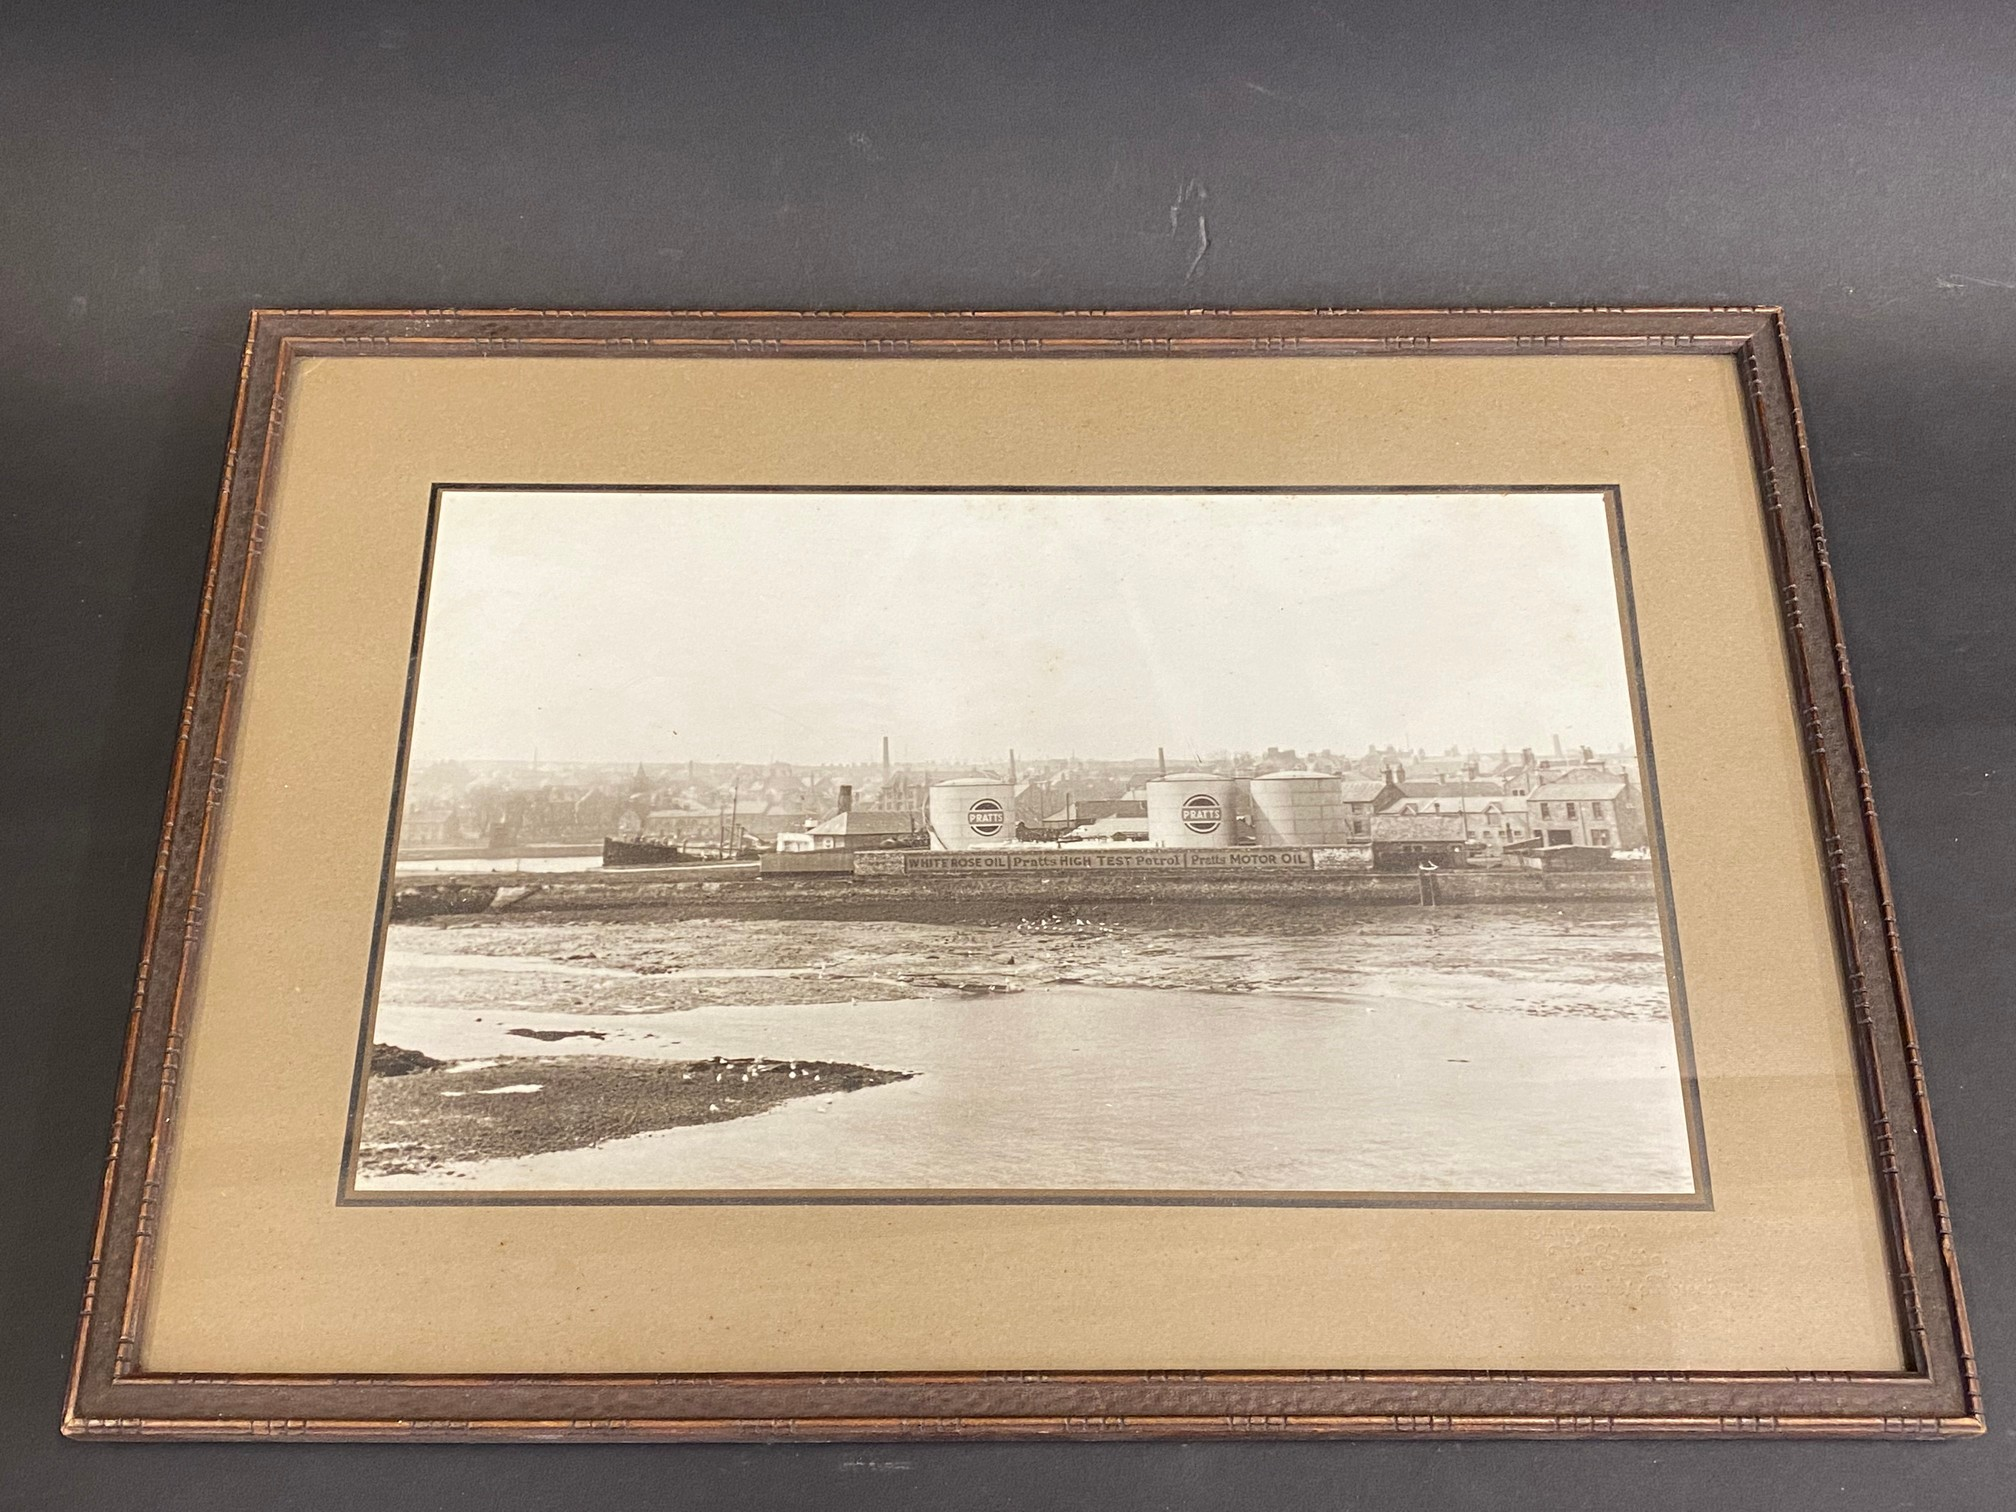 A framed original photograph of the Pratts Refinery at Berwick-upon-Tweed, probably a photograph